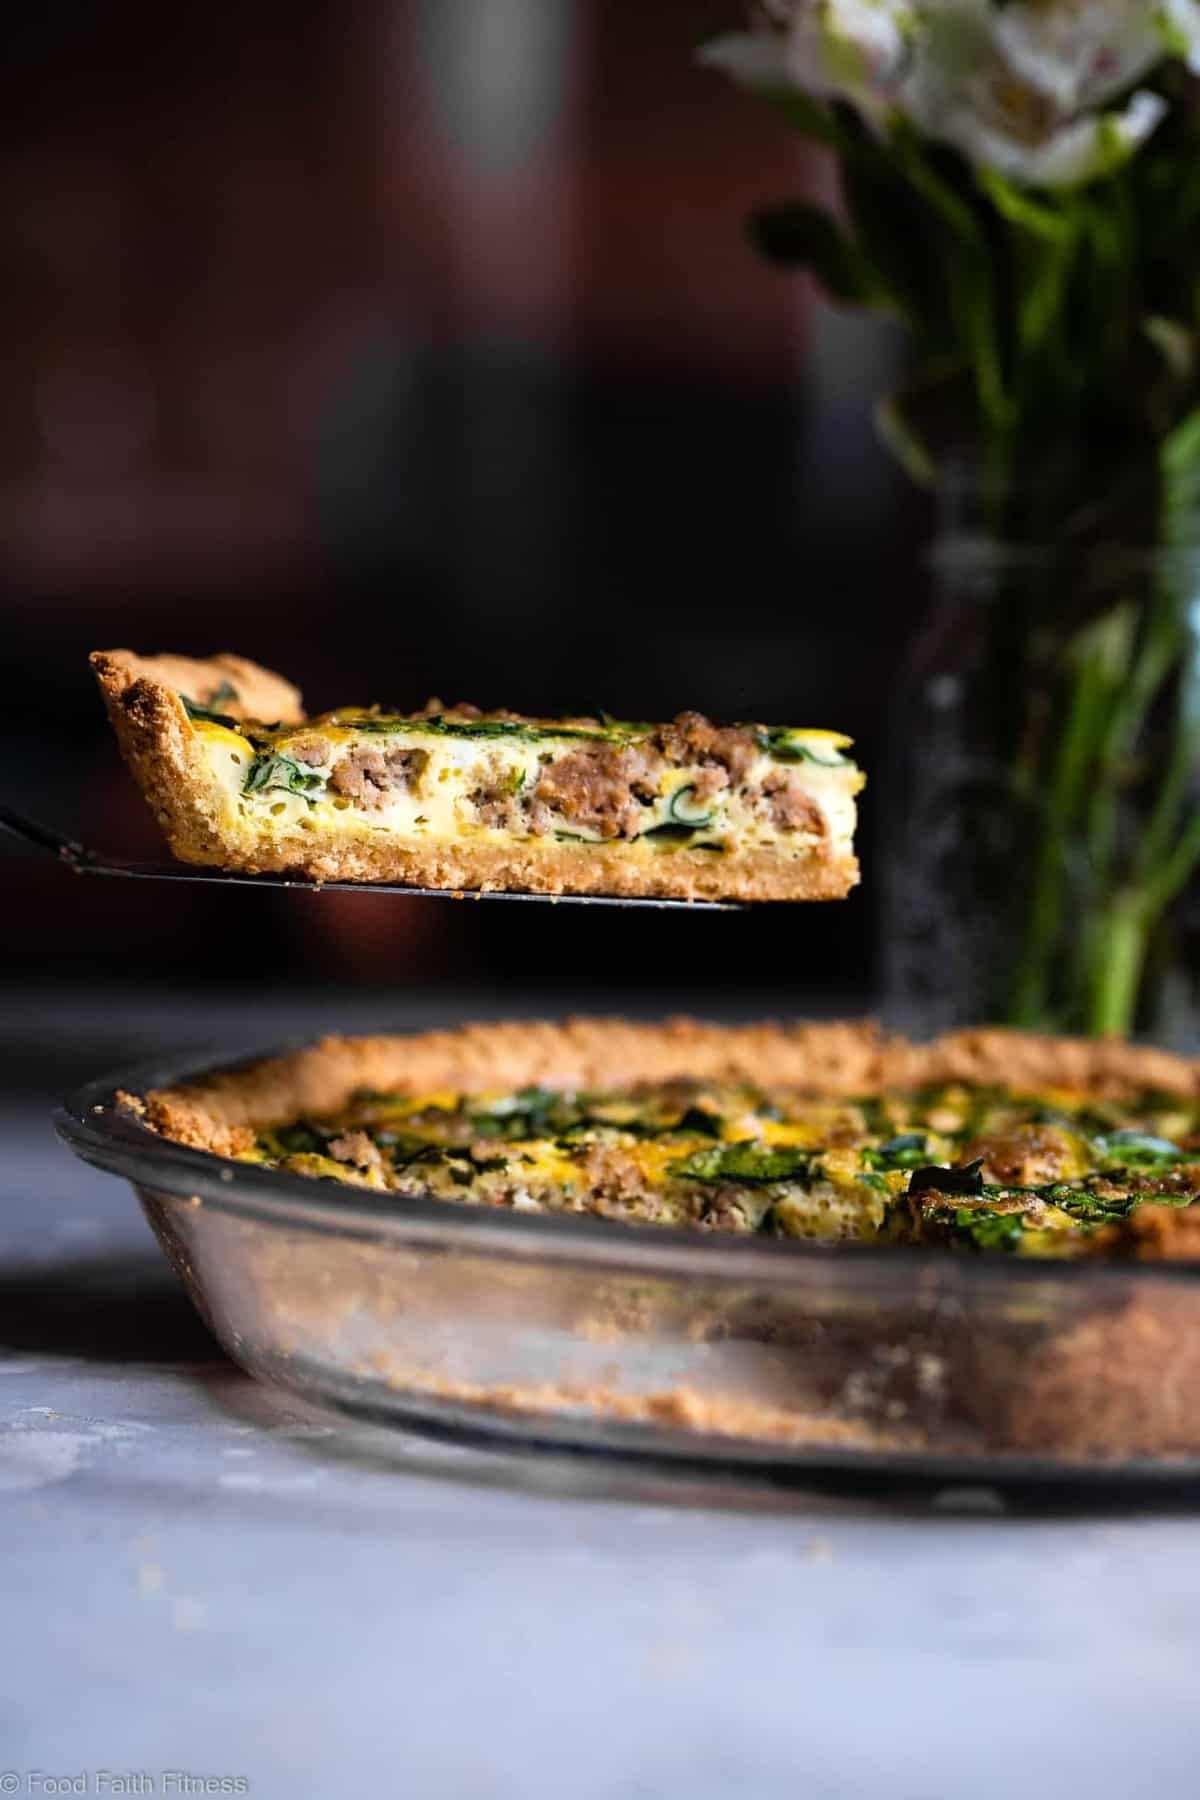 Gluten Free Low Carb Quiche - This EASY dairy free and paleo low carb spinach Quiche has a homemade, buttery, flaky Almond Flour Crust! Sausage, spinach and eggs make a high protein, filling breakfast!  Great for meal prep! | #Foodfaithfitness | #Glutenfree #Lowcarb #Keto #paleo #dairyfree